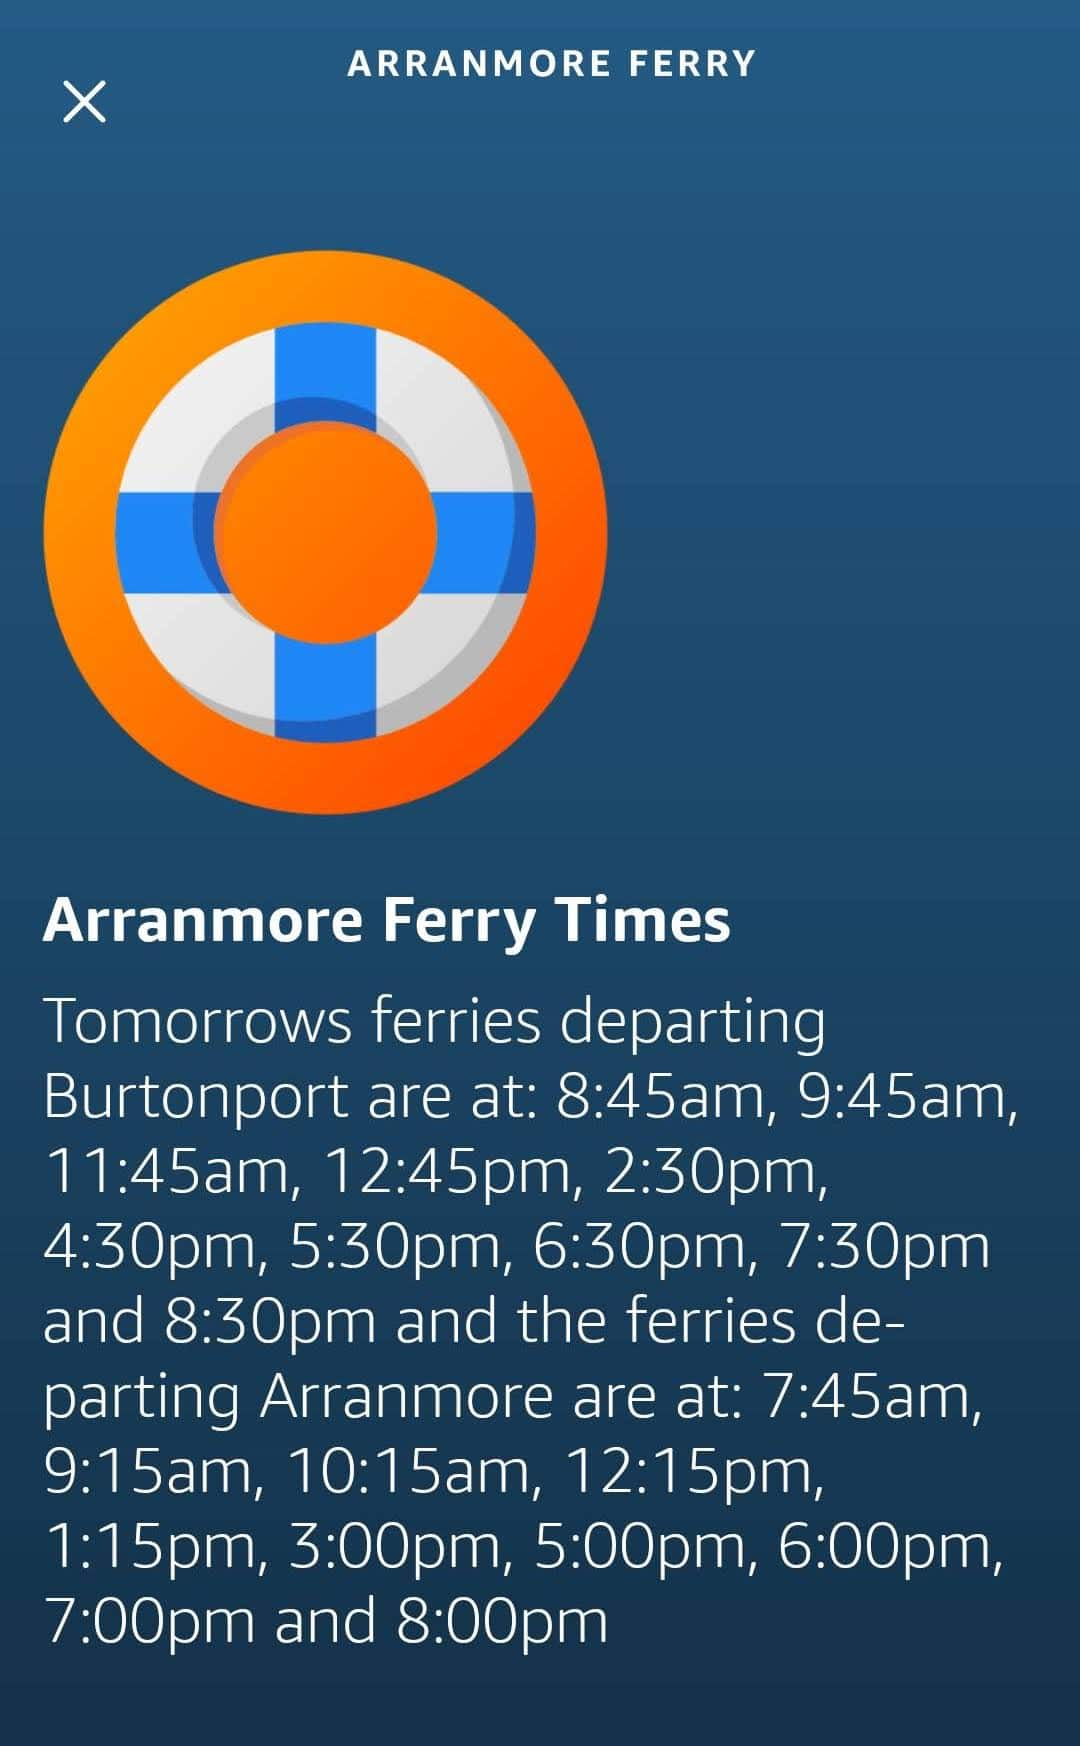 Mobile App with a full response from Arranmore Ferry